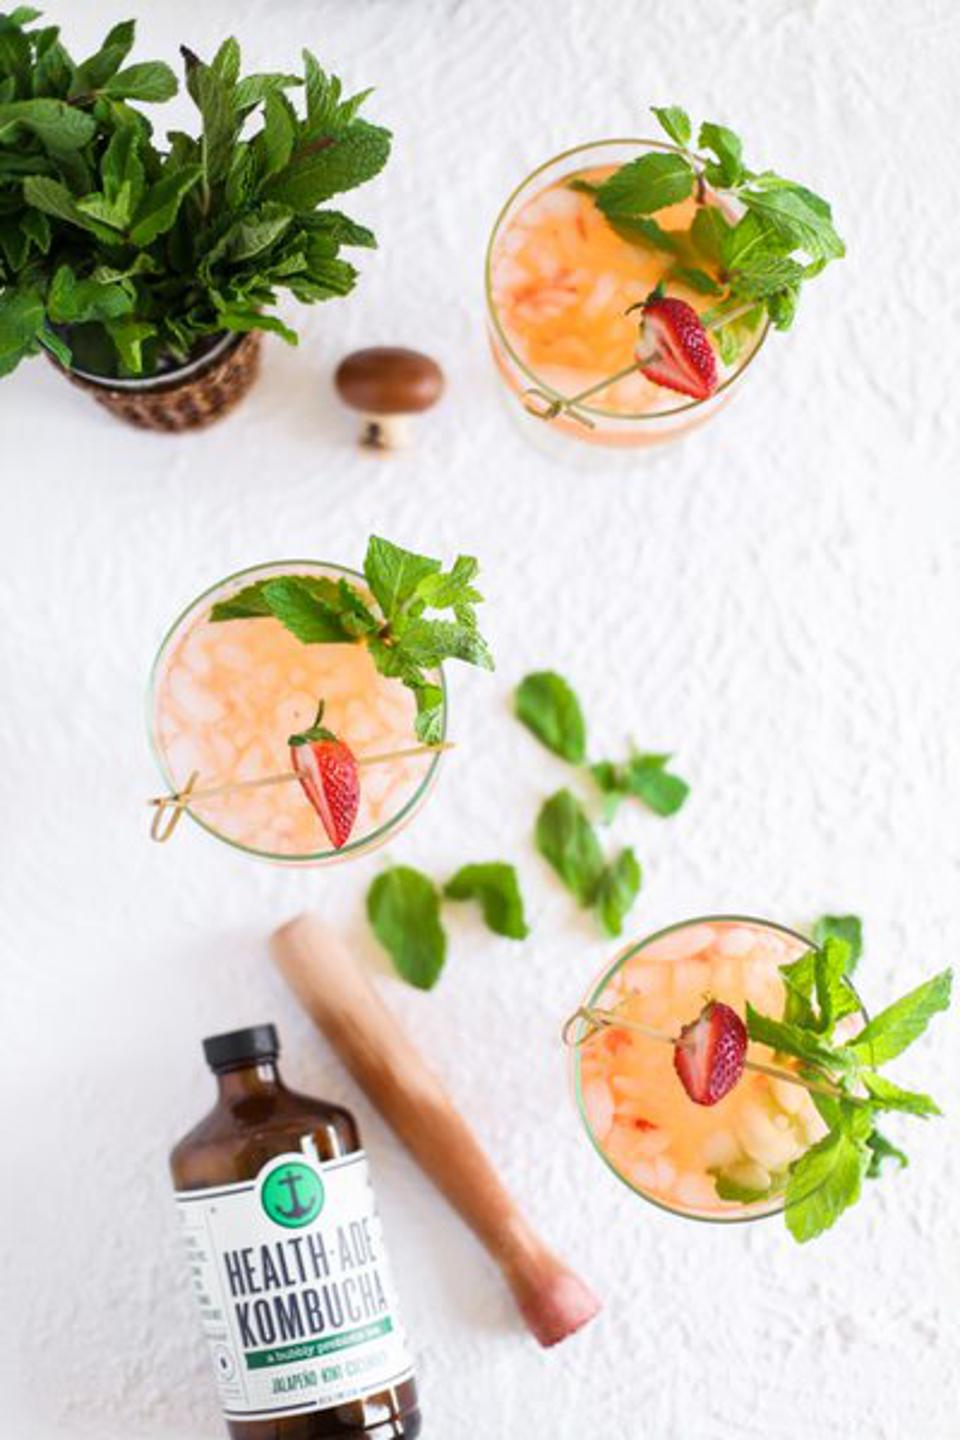 Aerial photo of cocktails garnished with strawberries. Muddler also pictured.